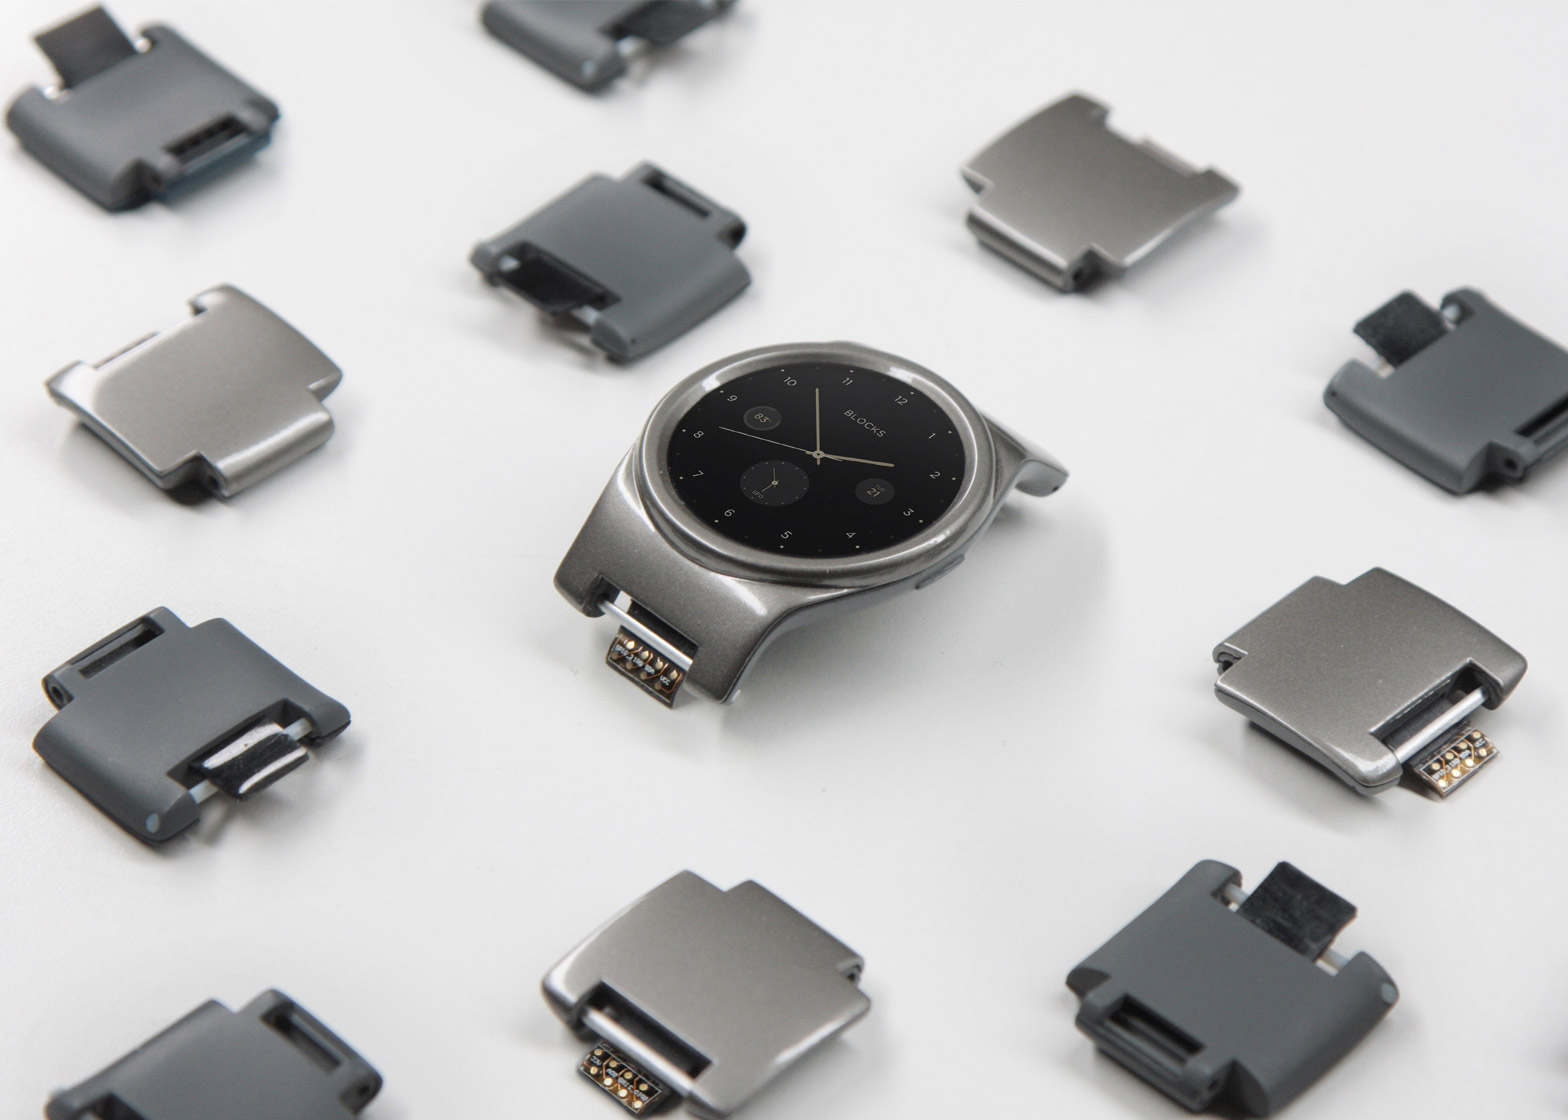 Modular smartwatch by Blocks